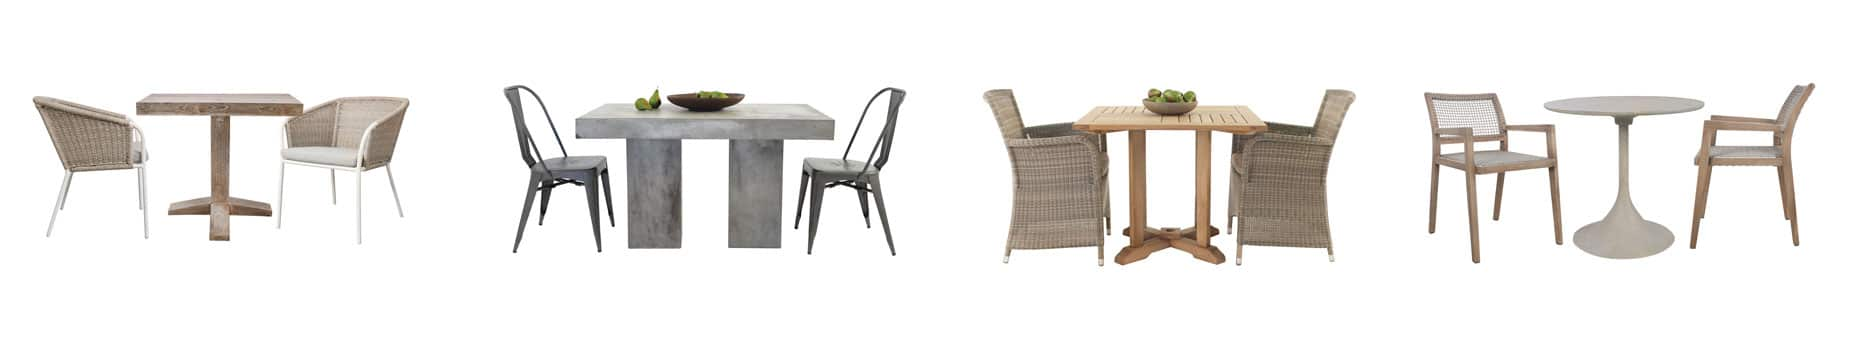 Outdoor Dining Sets For Two People